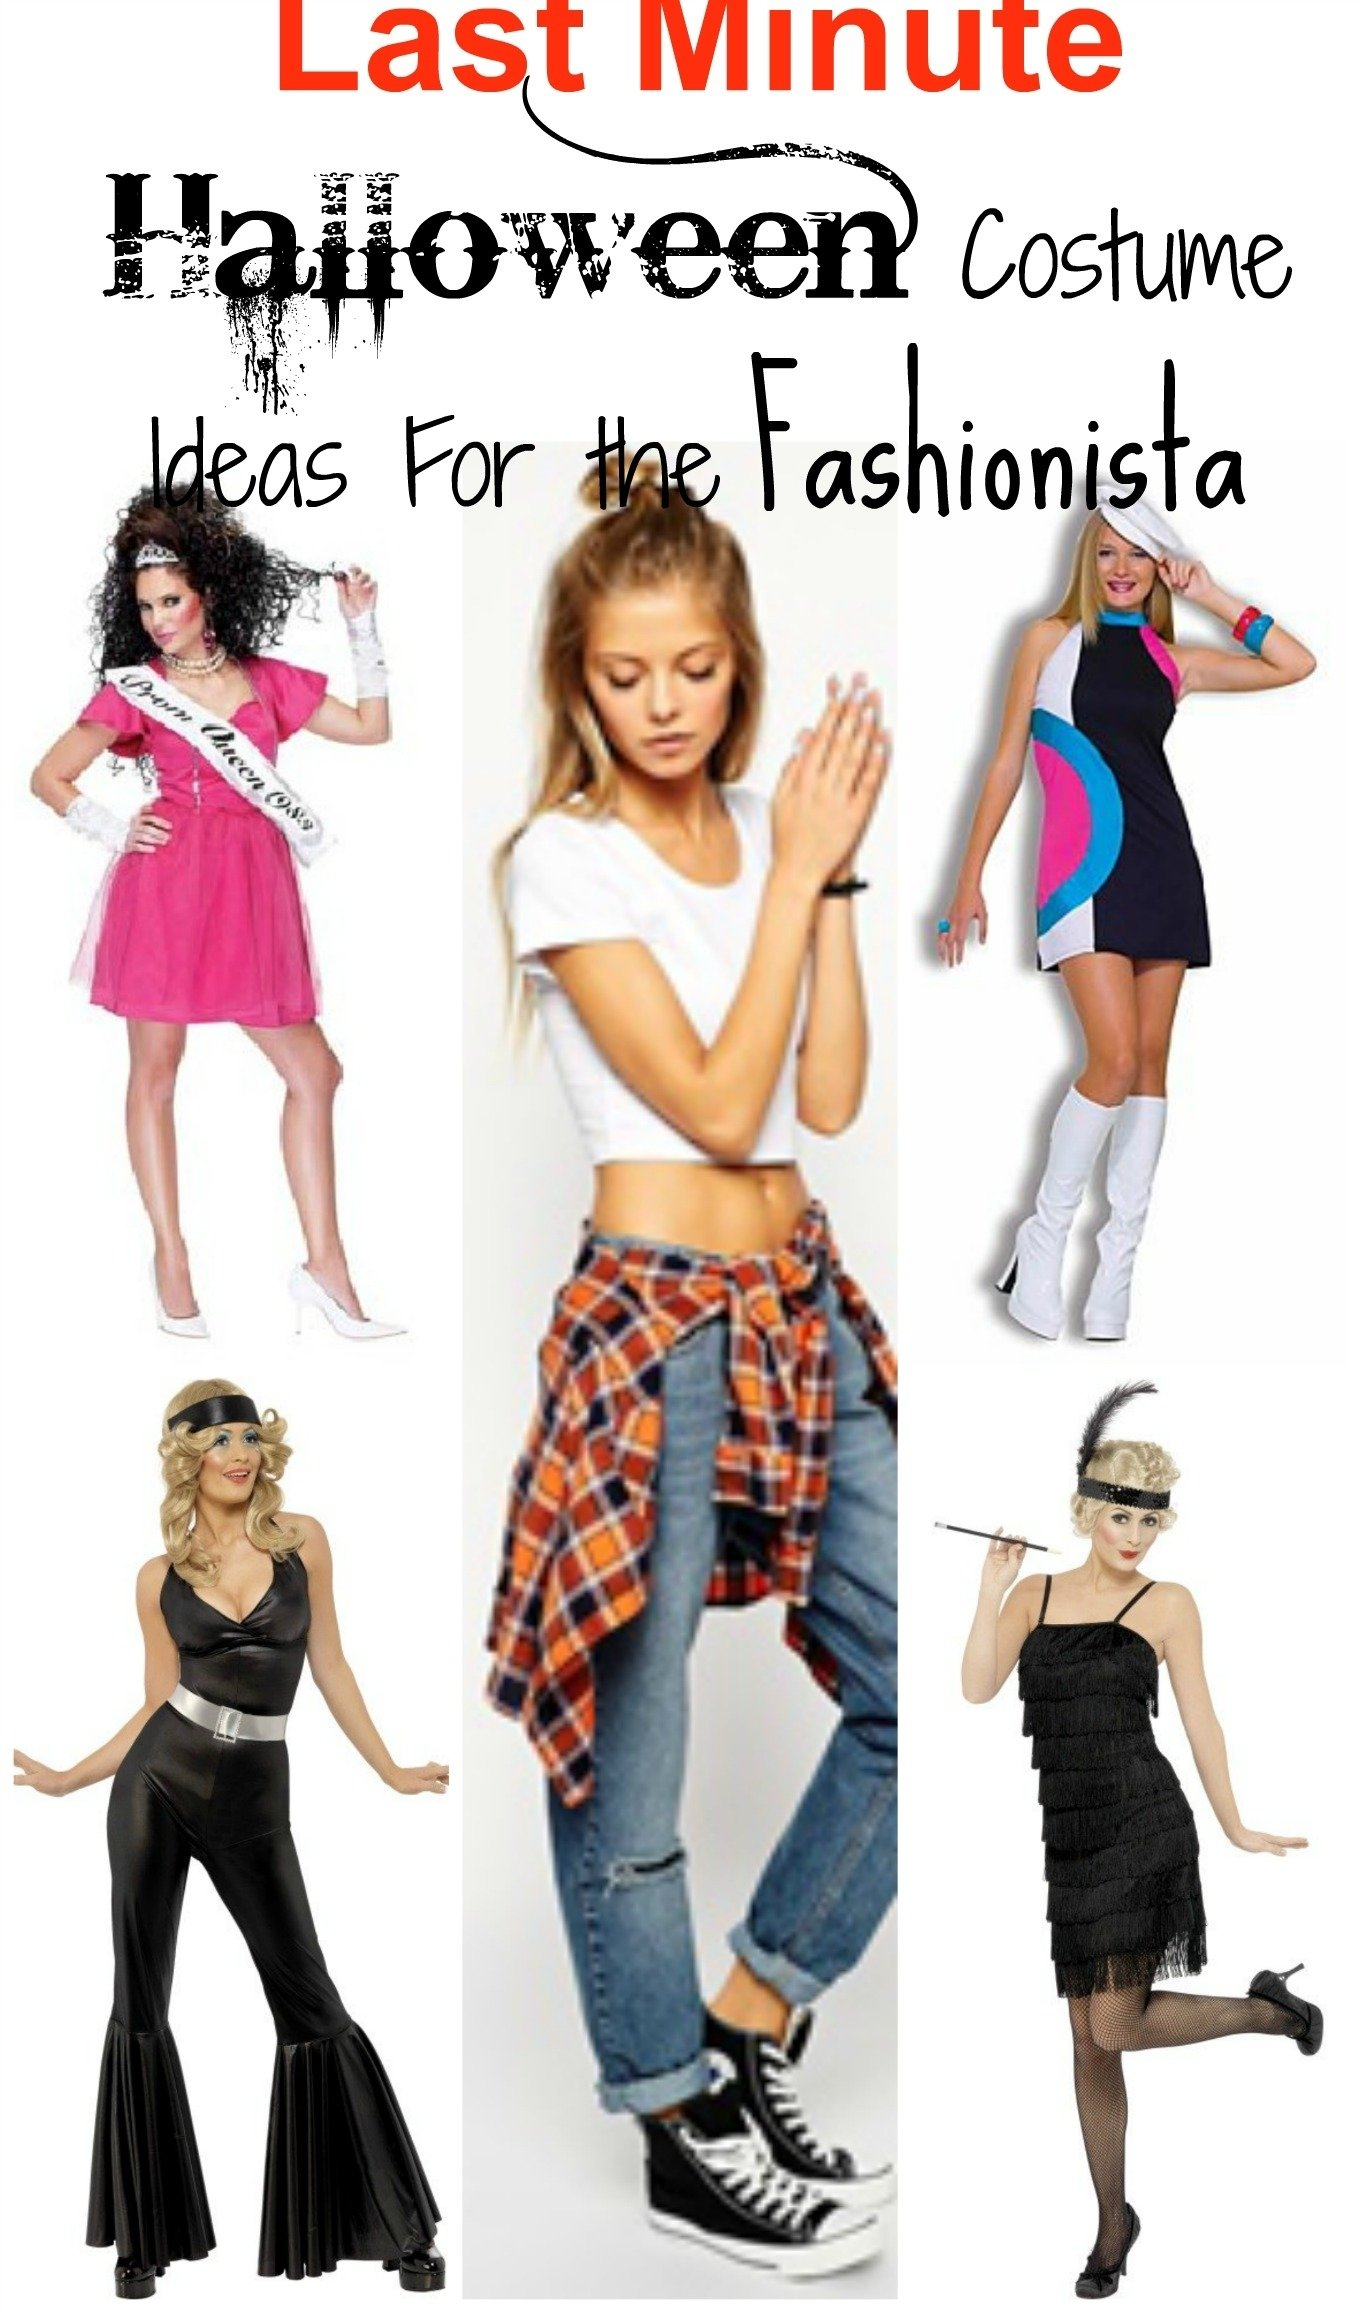 5 last minute halloween costume ideas for the fashionista